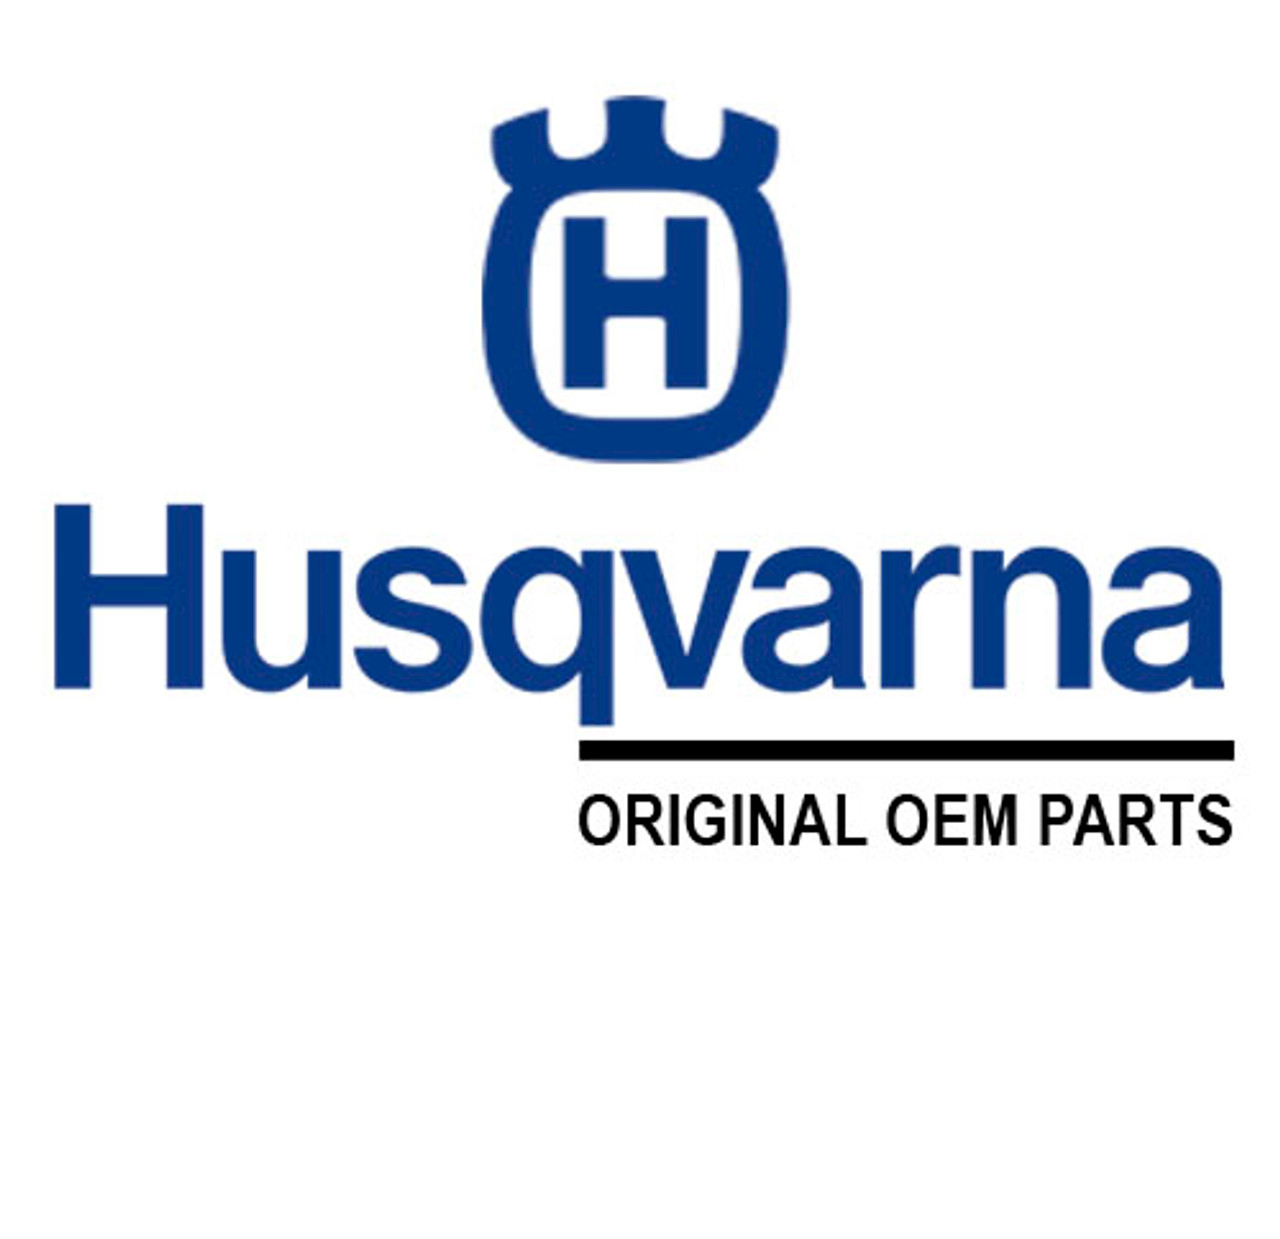 HUSQVARNA Scrench 502114603 Image 1